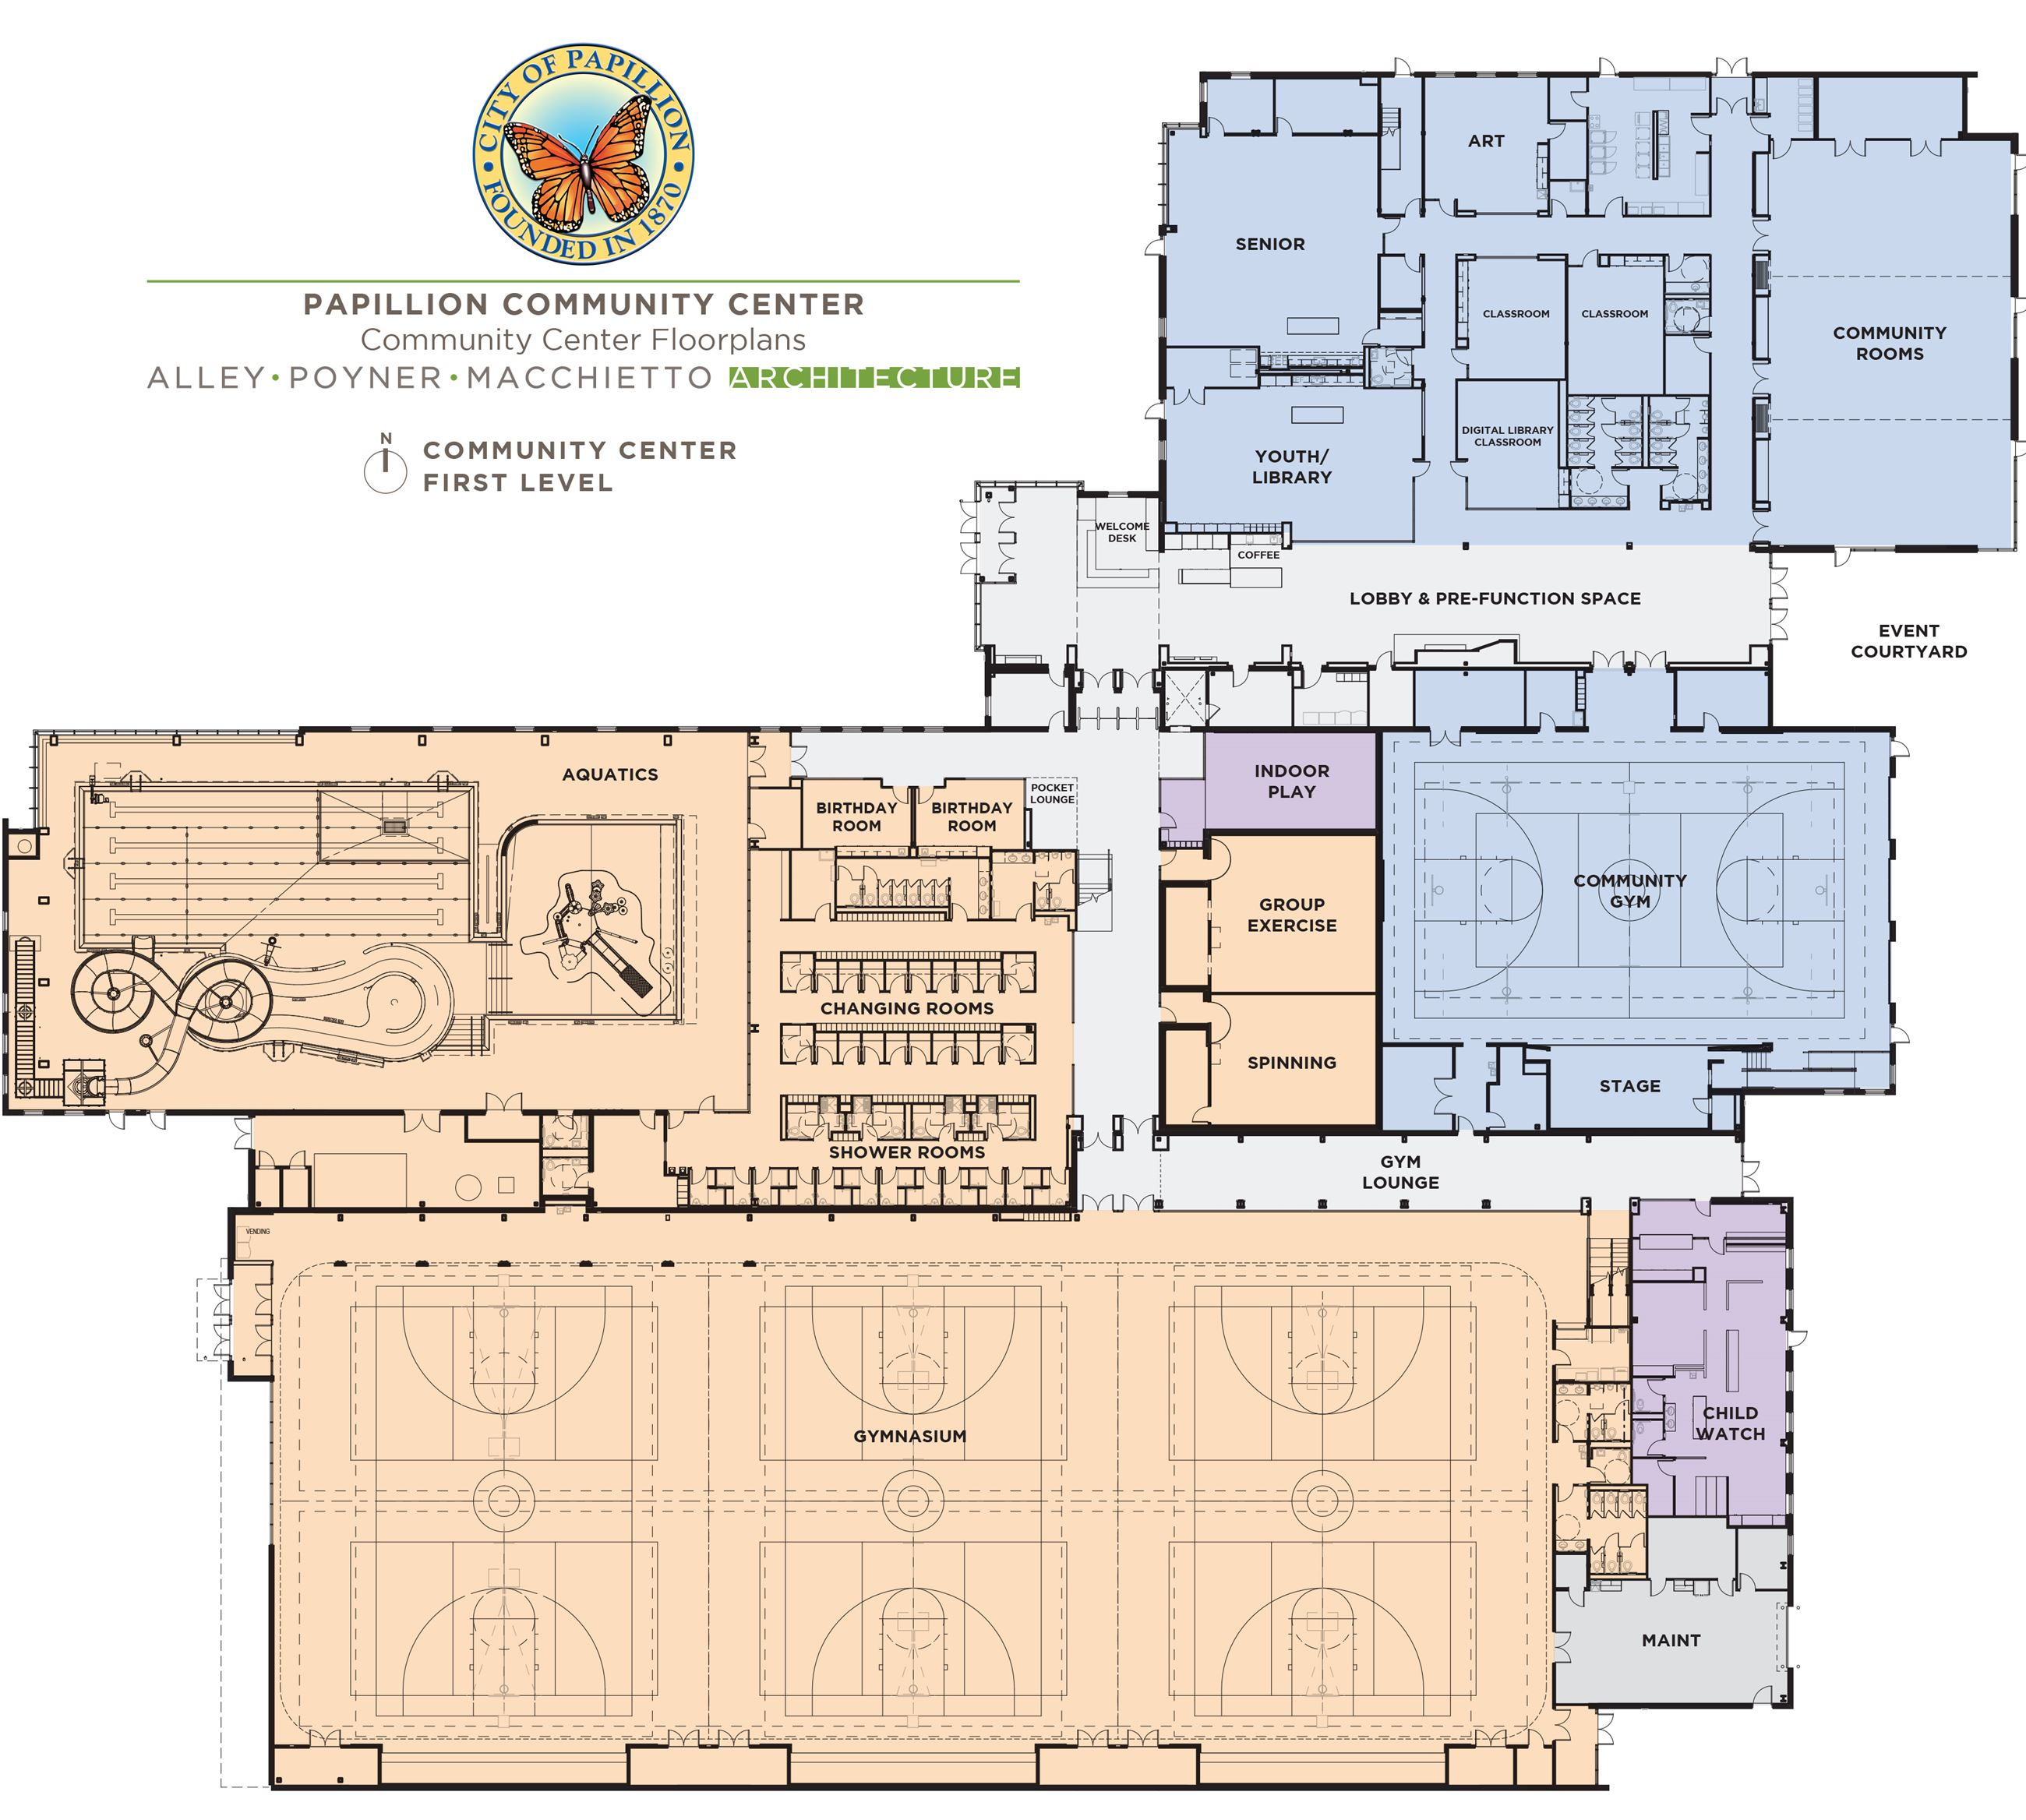 Community Center First Floor Plan